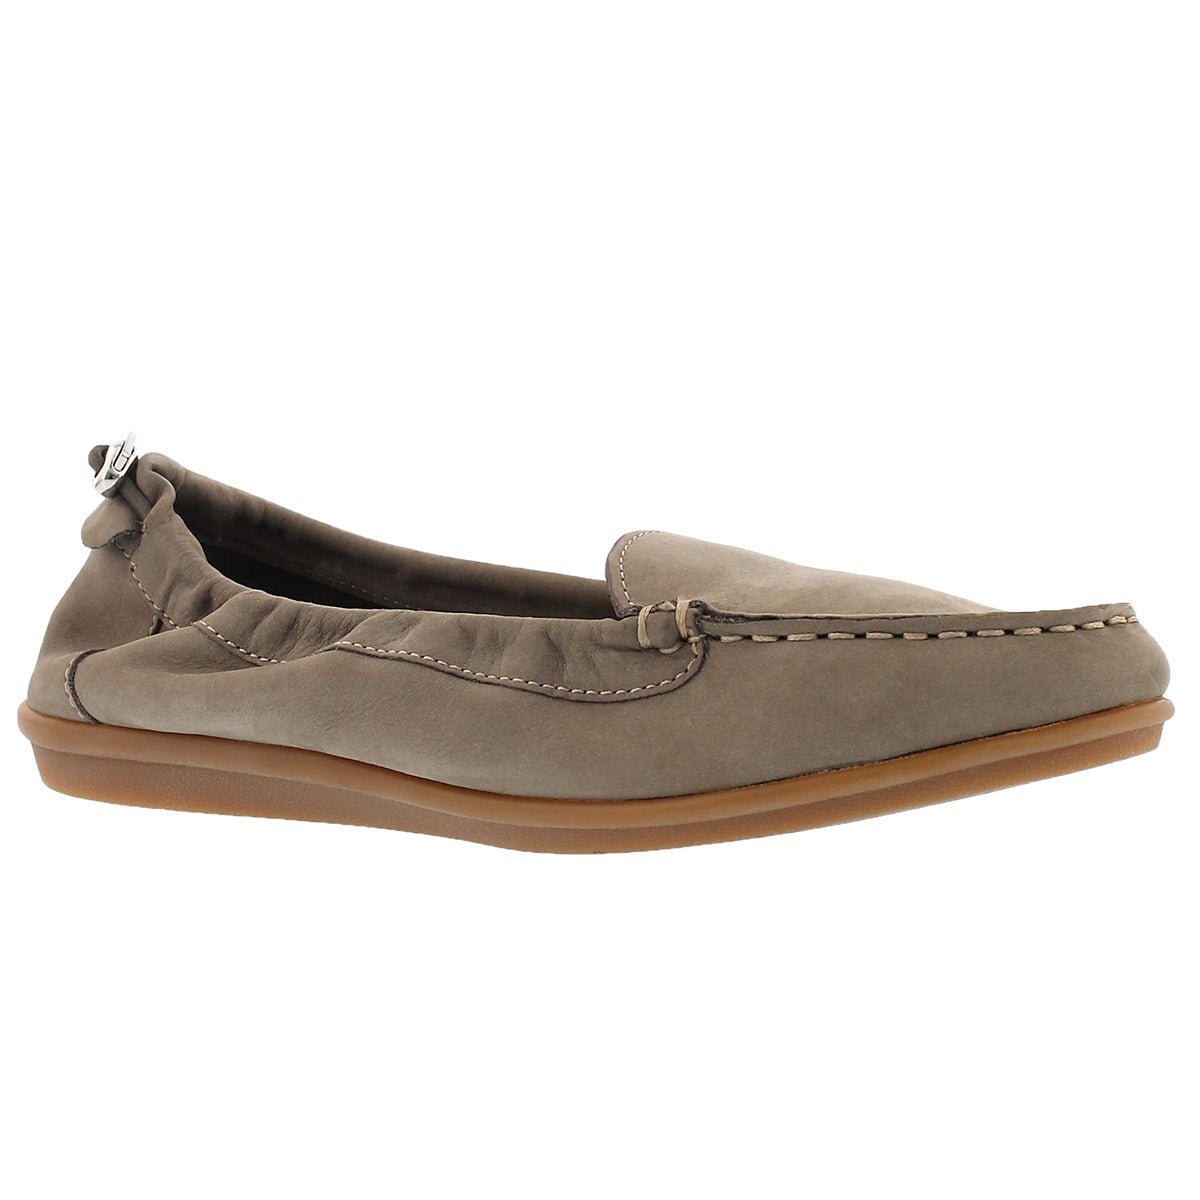 Lds Endless Wink taupe casual slip on